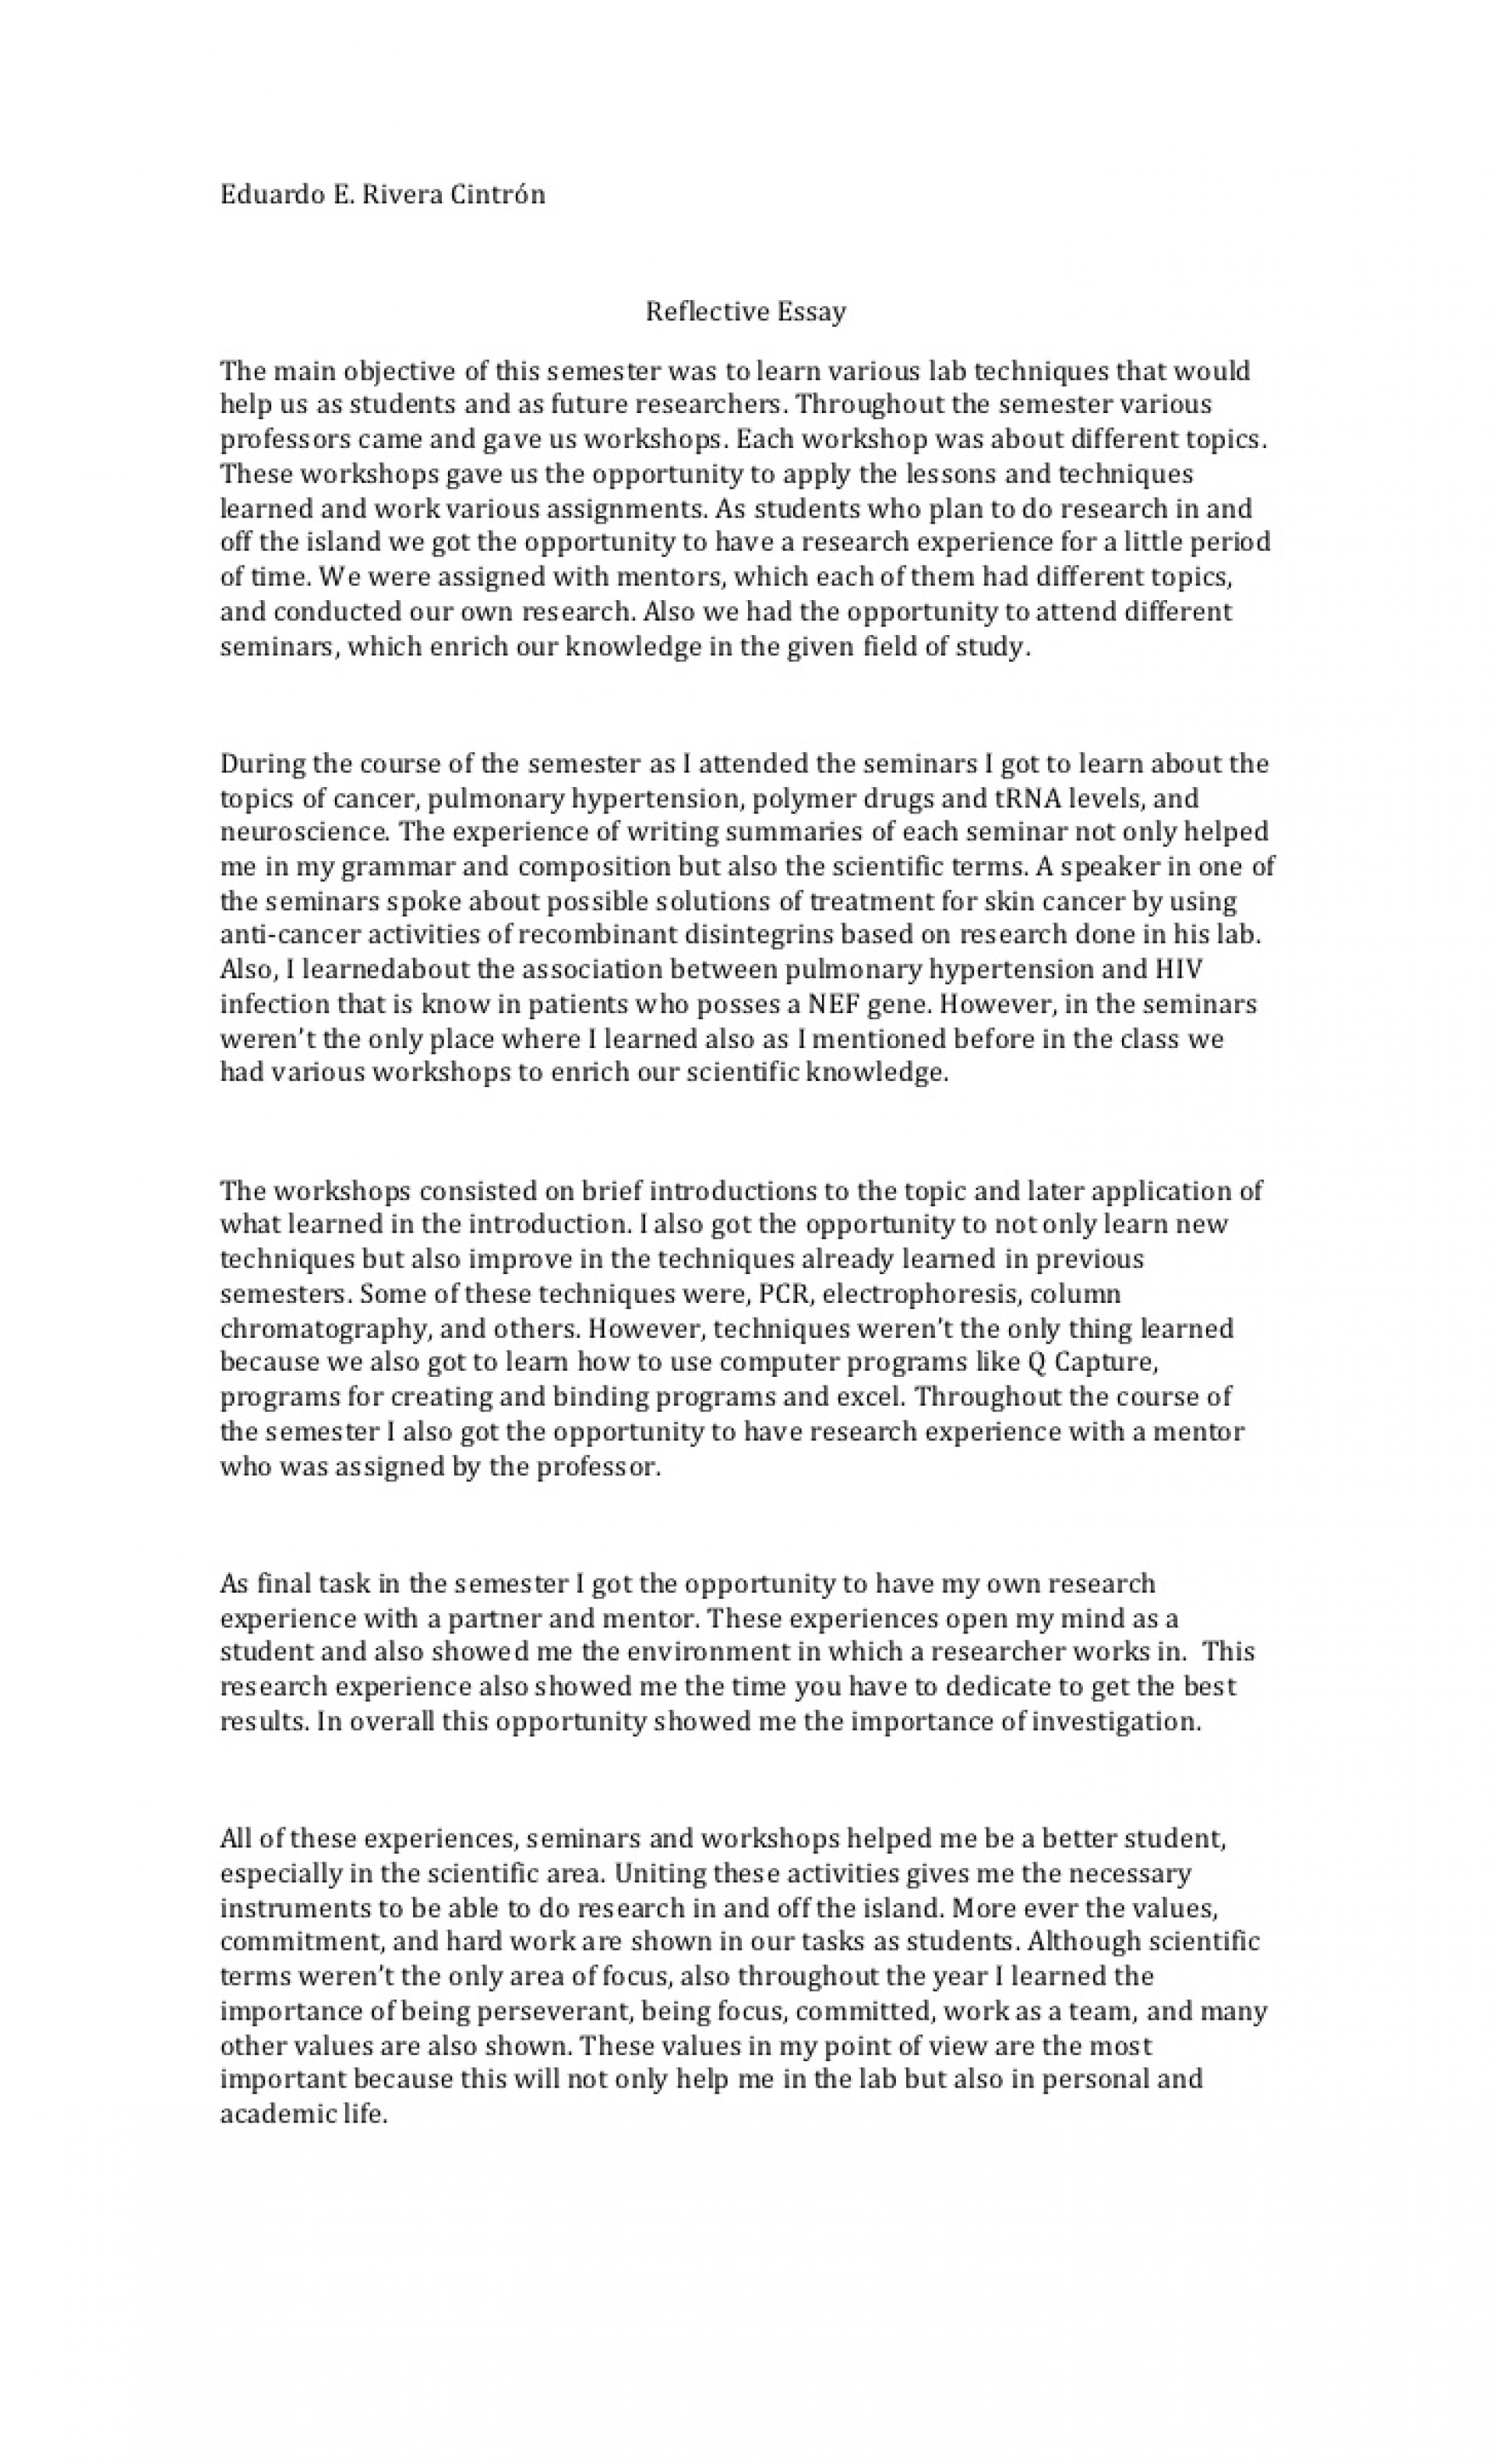 001 What Is Reflective Essay Example Course Remarkable A Personal Examples Format 1920